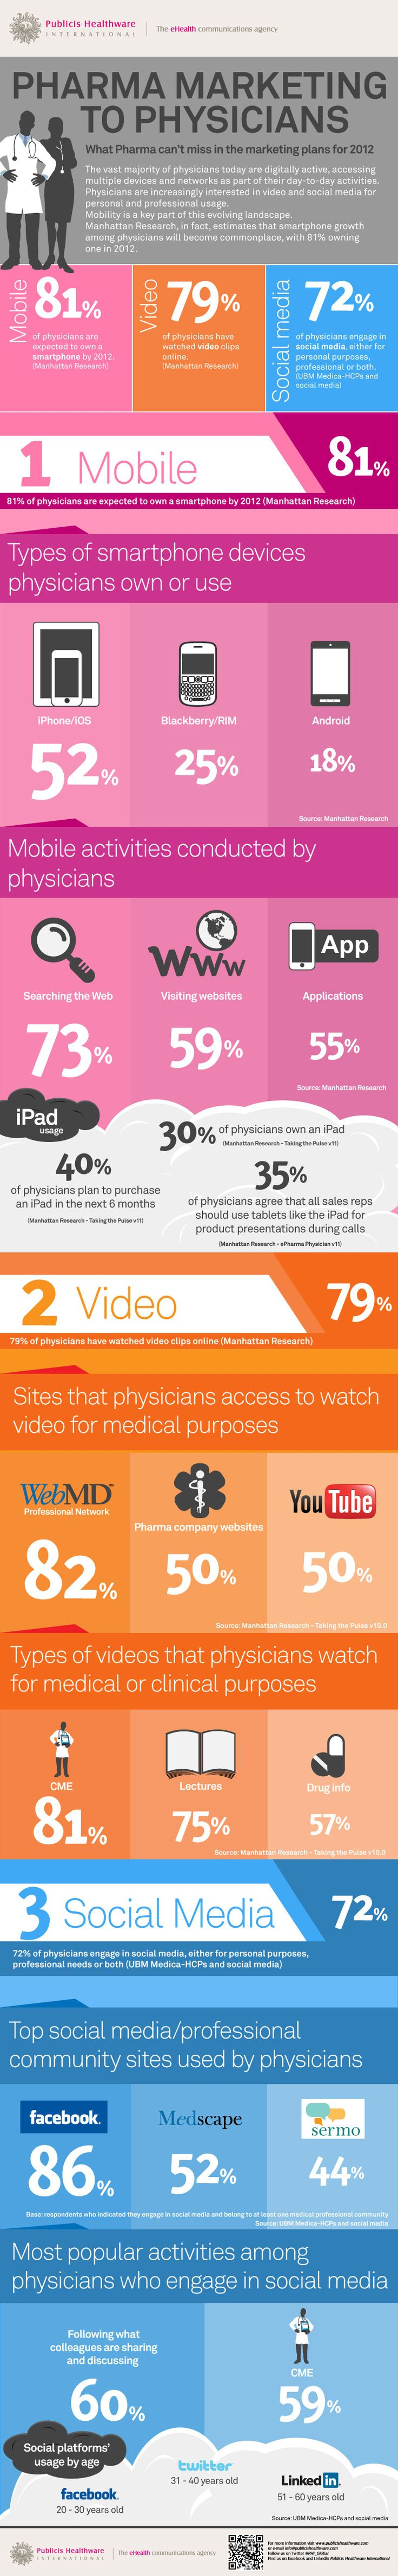 Pharma marketing to physicians [infographic]